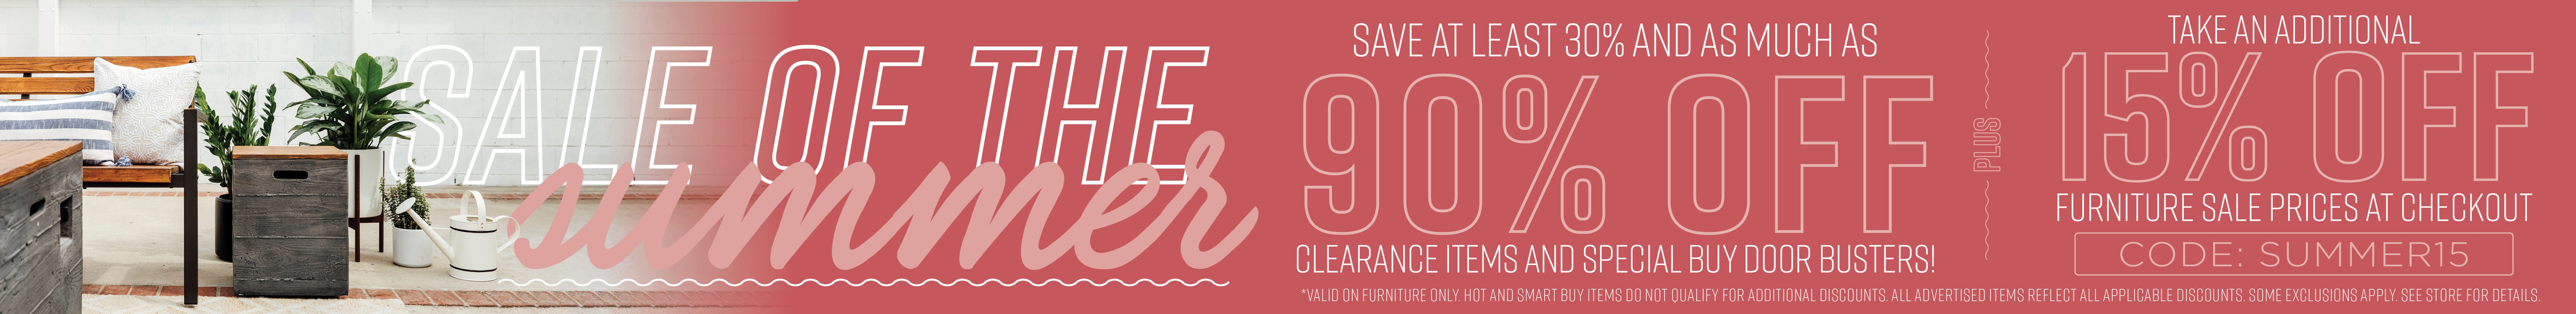 Furniture & ApplianceMart Sale of the Summer